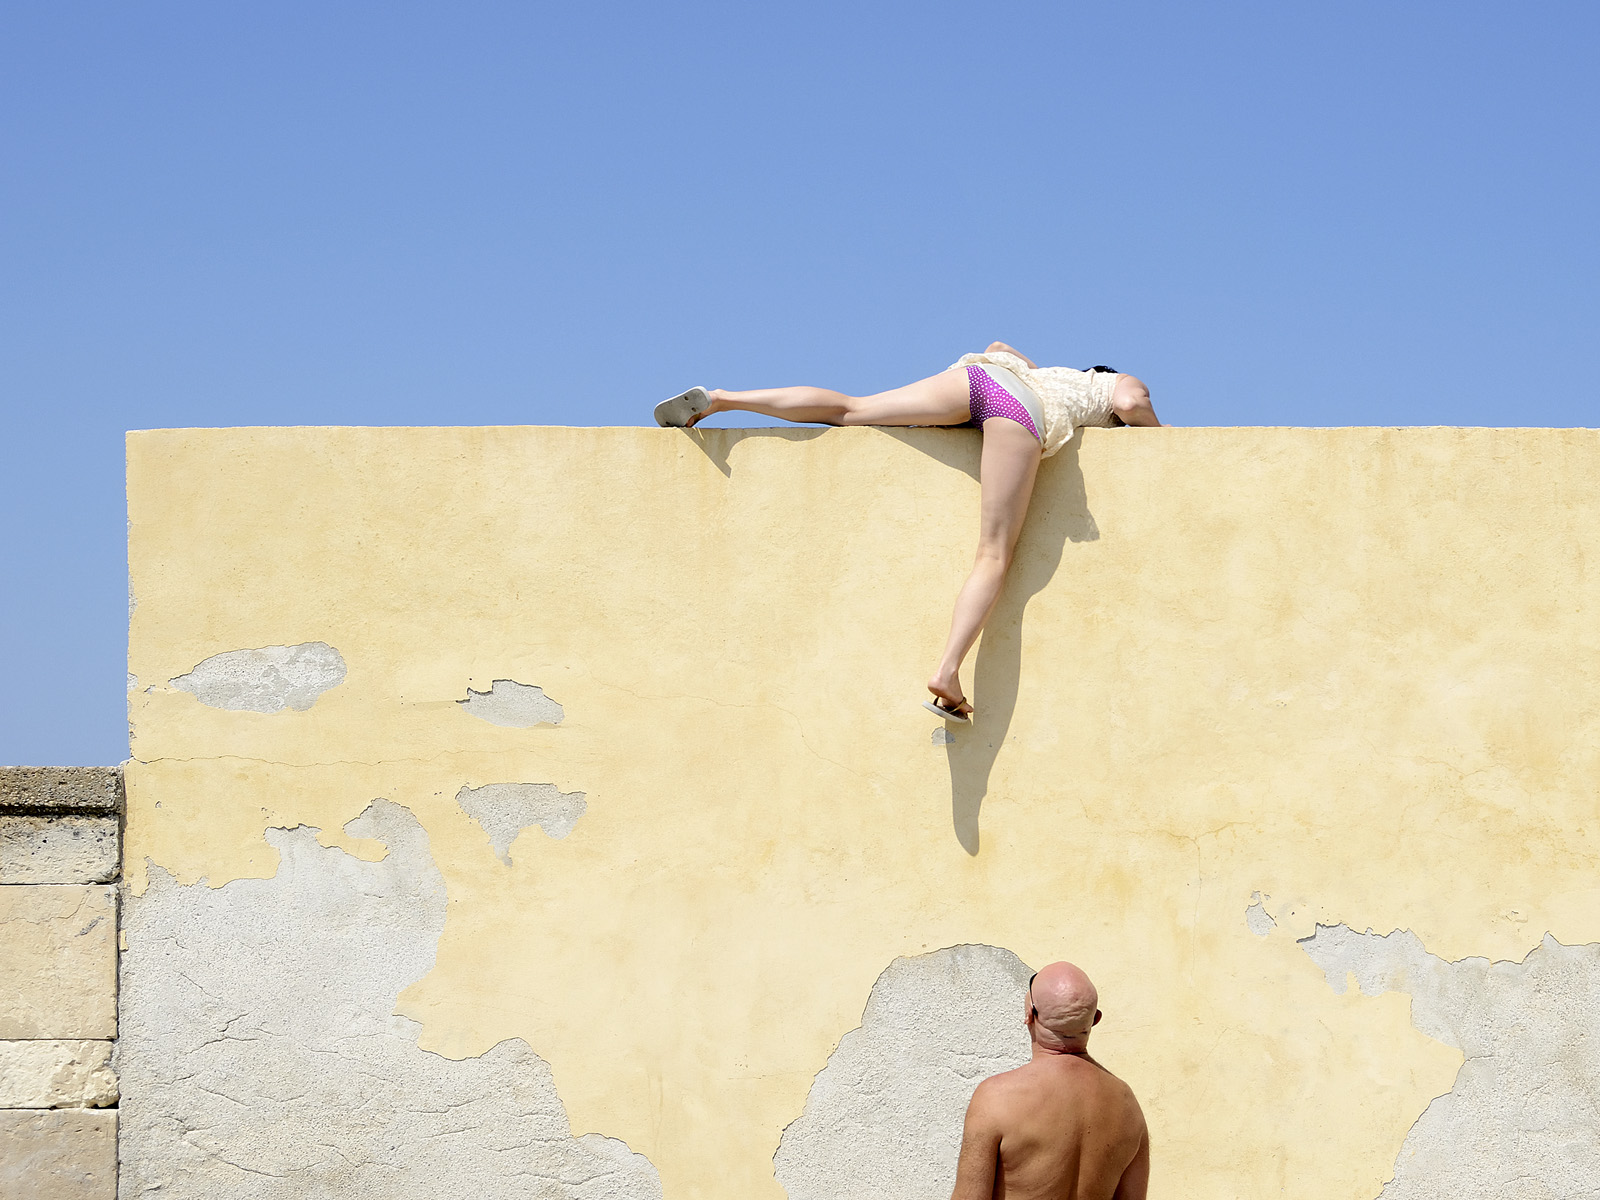 """The image """"Bald Look"""" was taken in Sicily during our honeymoon. My wife attempted to climb off of the harbor wall when she was spotted by a Polish tourist. The photograph will be on display during this year's APA SF Something Personal exhibition on Wednesday, November 4, 2015 from 5PM to 11PM. Please RSVP if you would like to come to the show.  The venue:  THE MIDWAY GALLERY, 900 MARIN STREET, SAN FRANCISCO"""